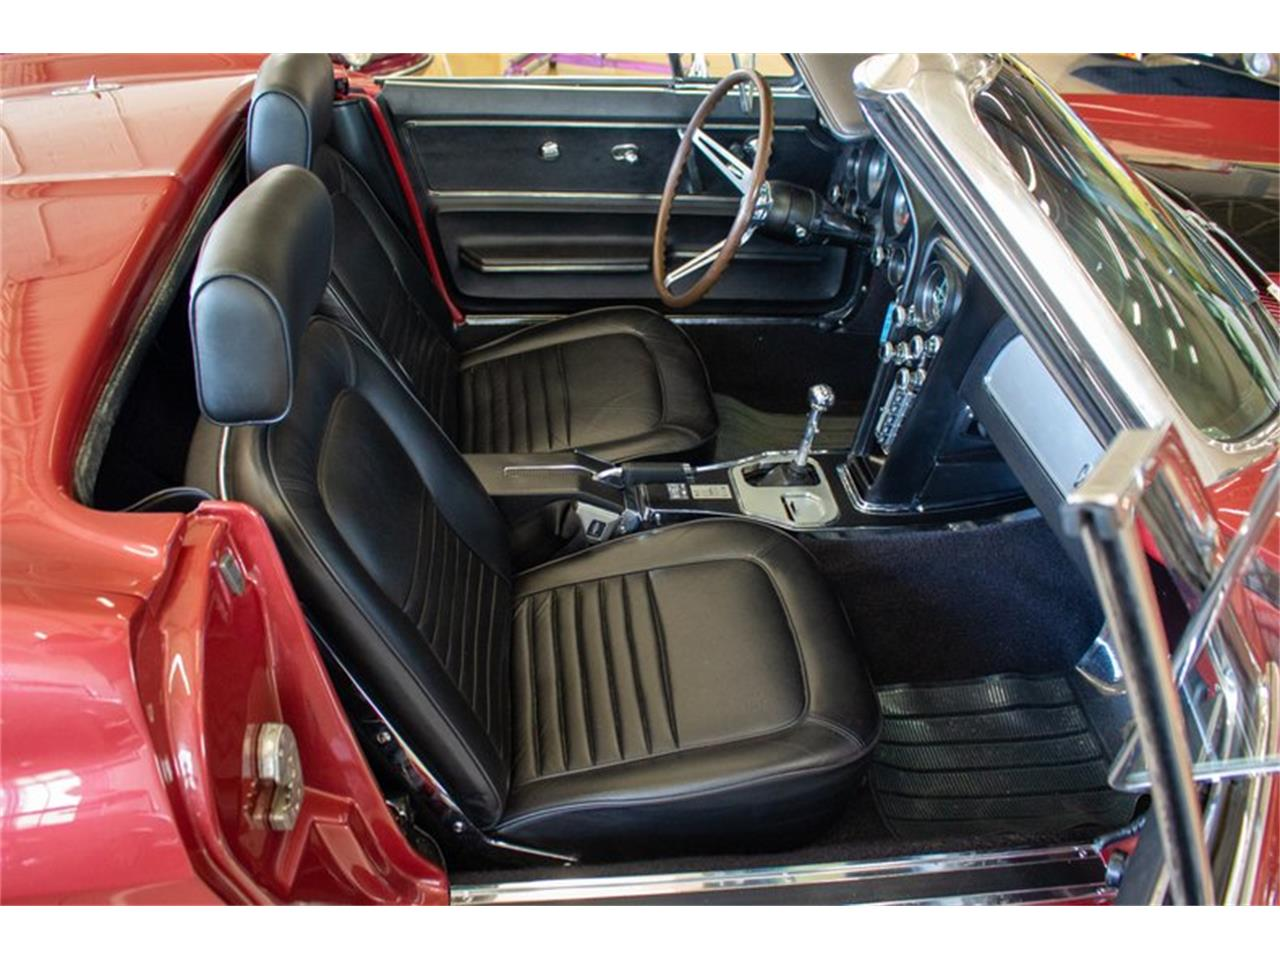 Large Picture of 1967 Chevrolet Corvette located in Maryland - $129,990.00 - QETF